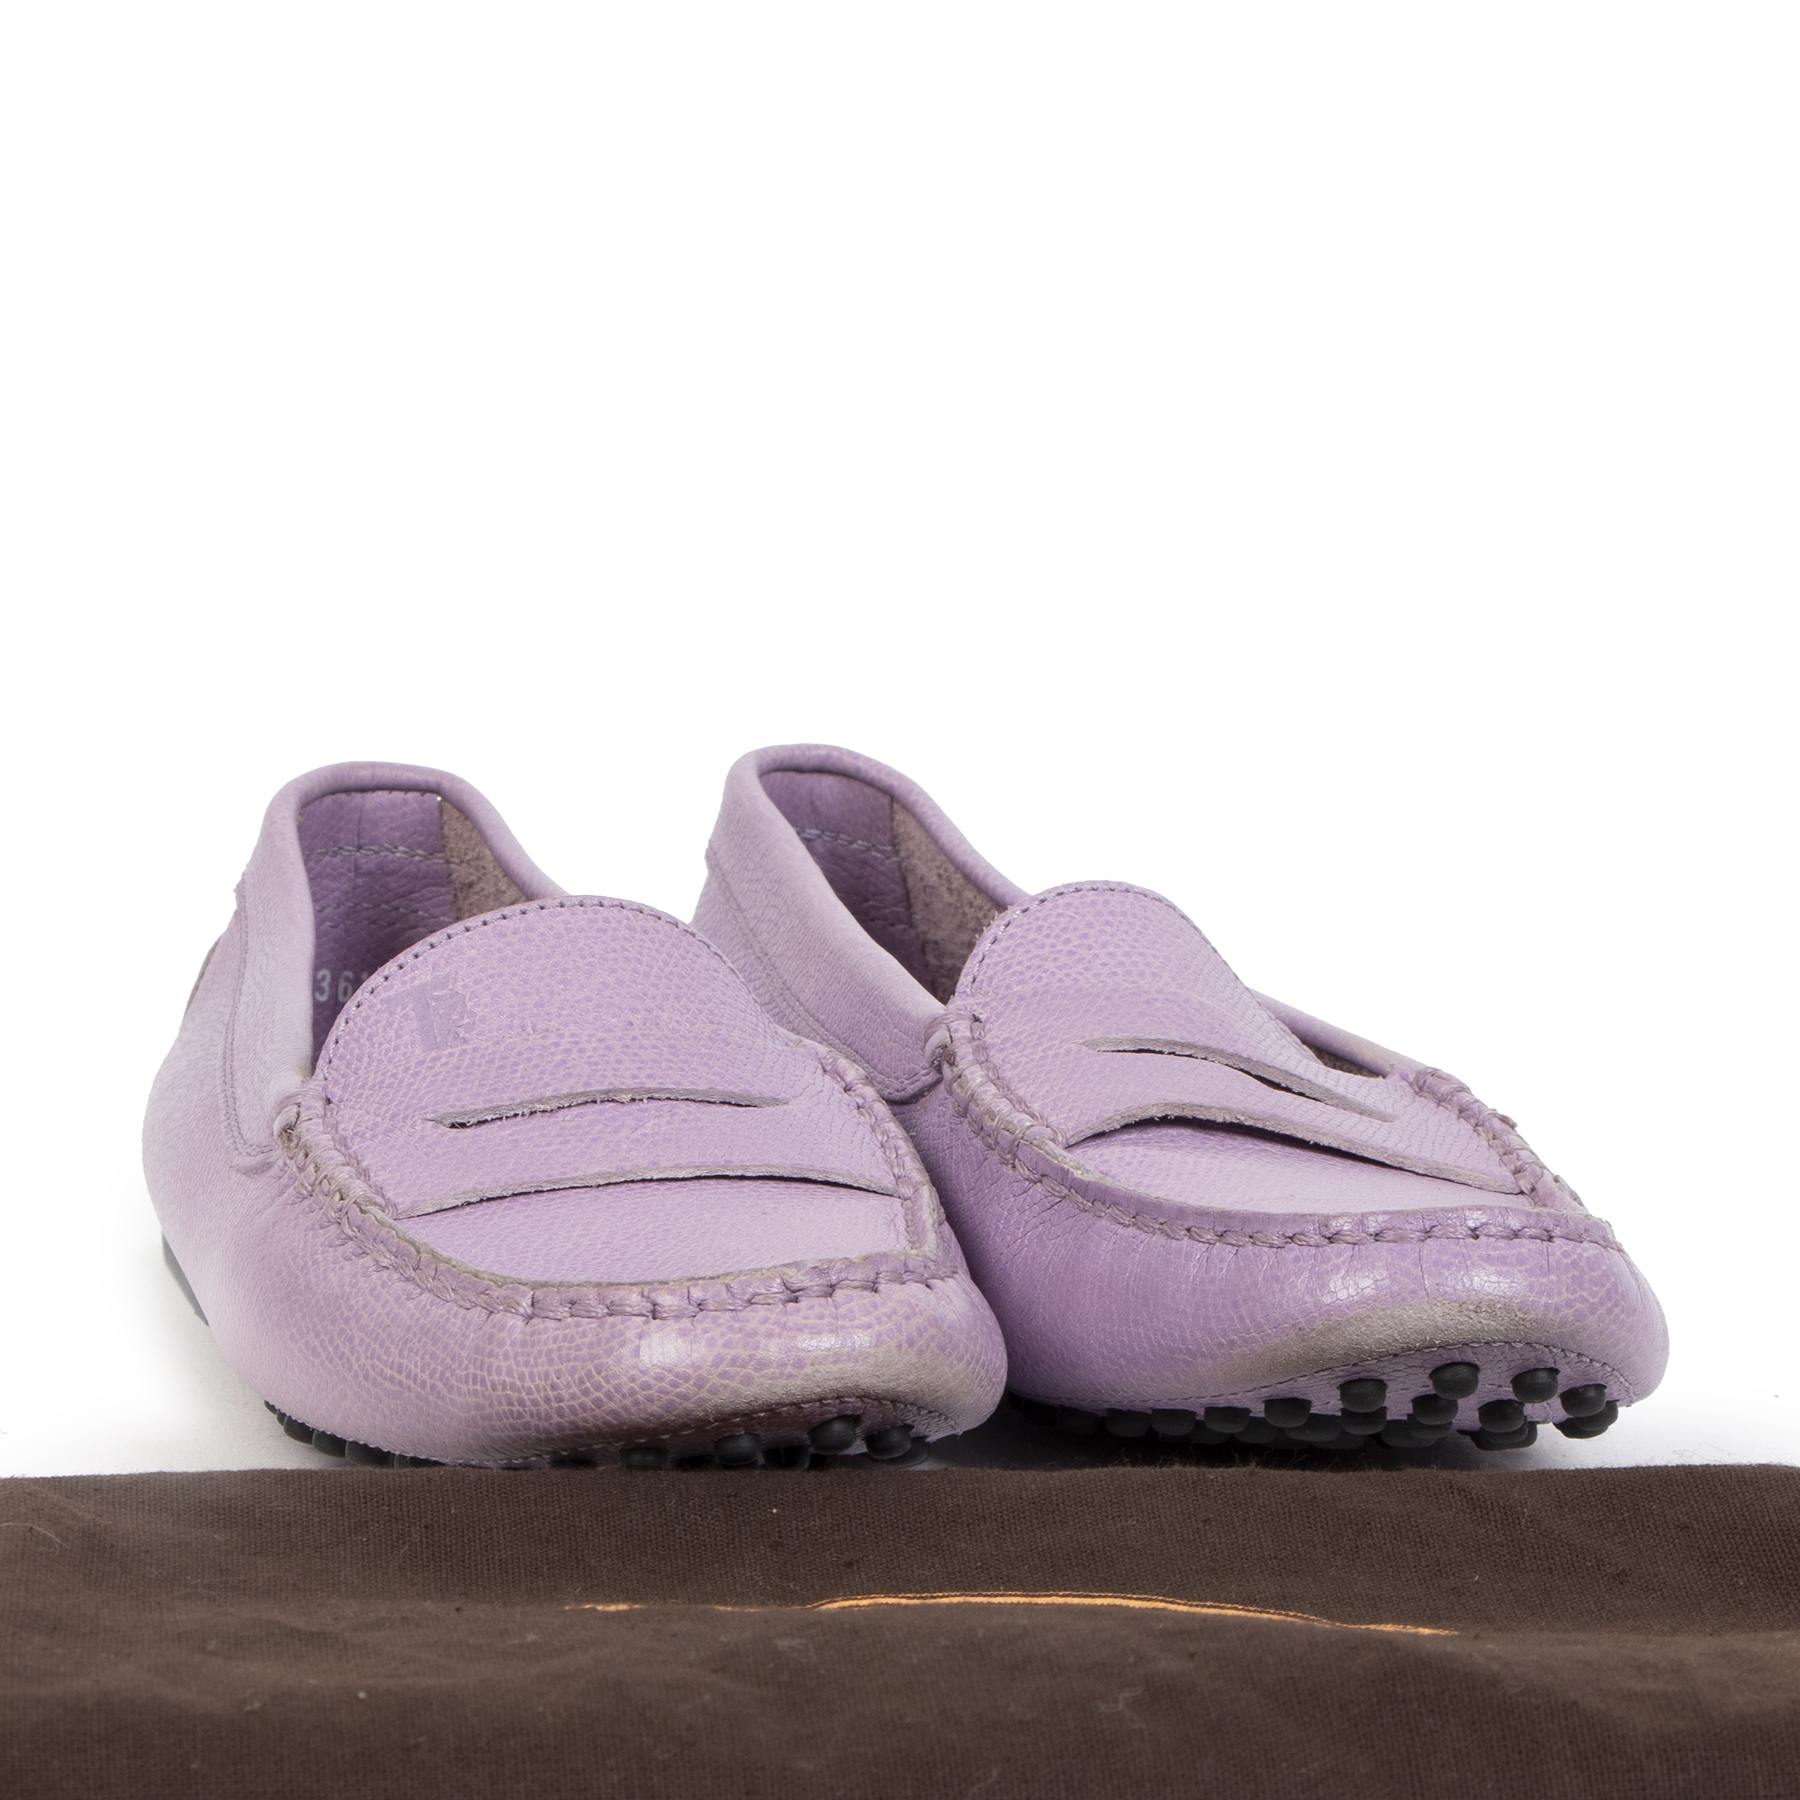 We buy and sell your authentic Tod's Gommino Loafers Leather Light Purple - size 36